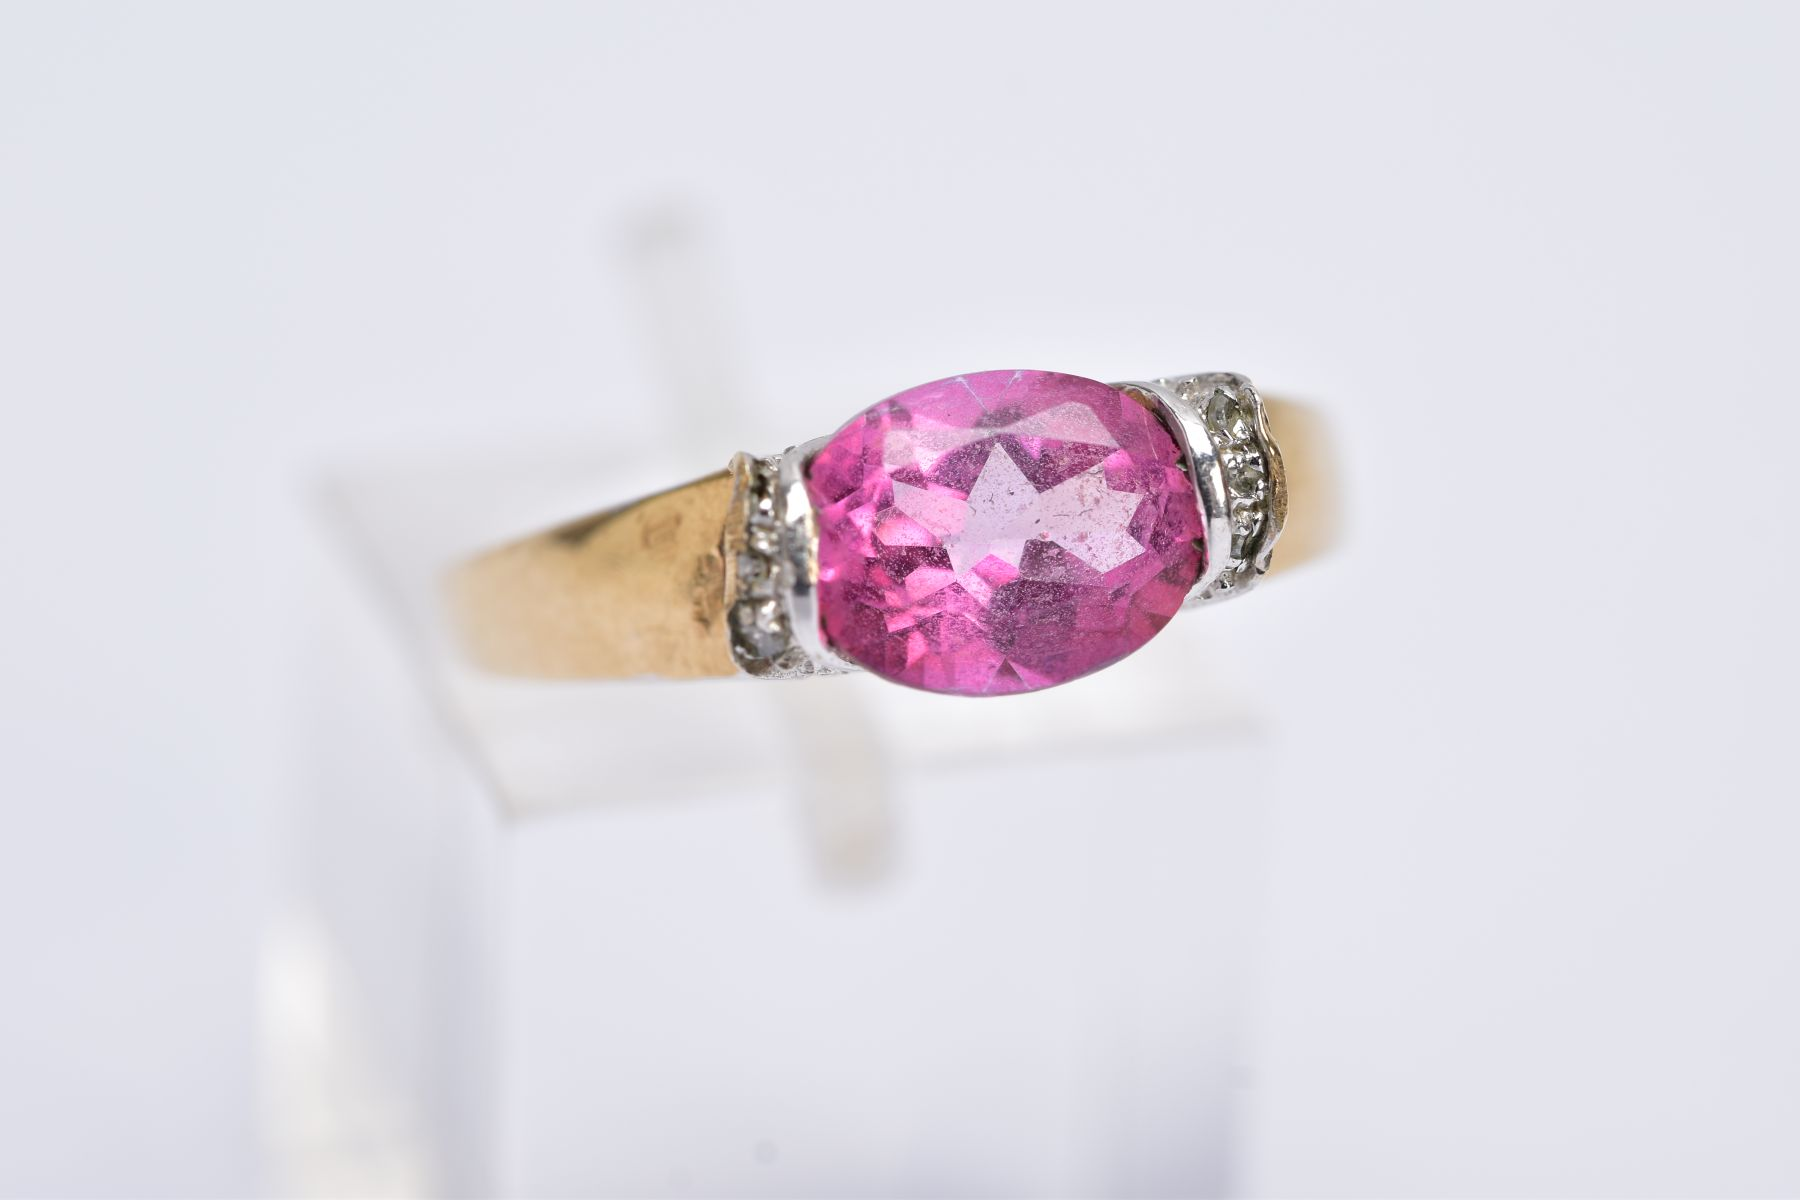 A 9CT GOLD PINK TOPAZ RING, designed with a tension set, oval cut pink topaz, single cut diamond - Image 5 of 5